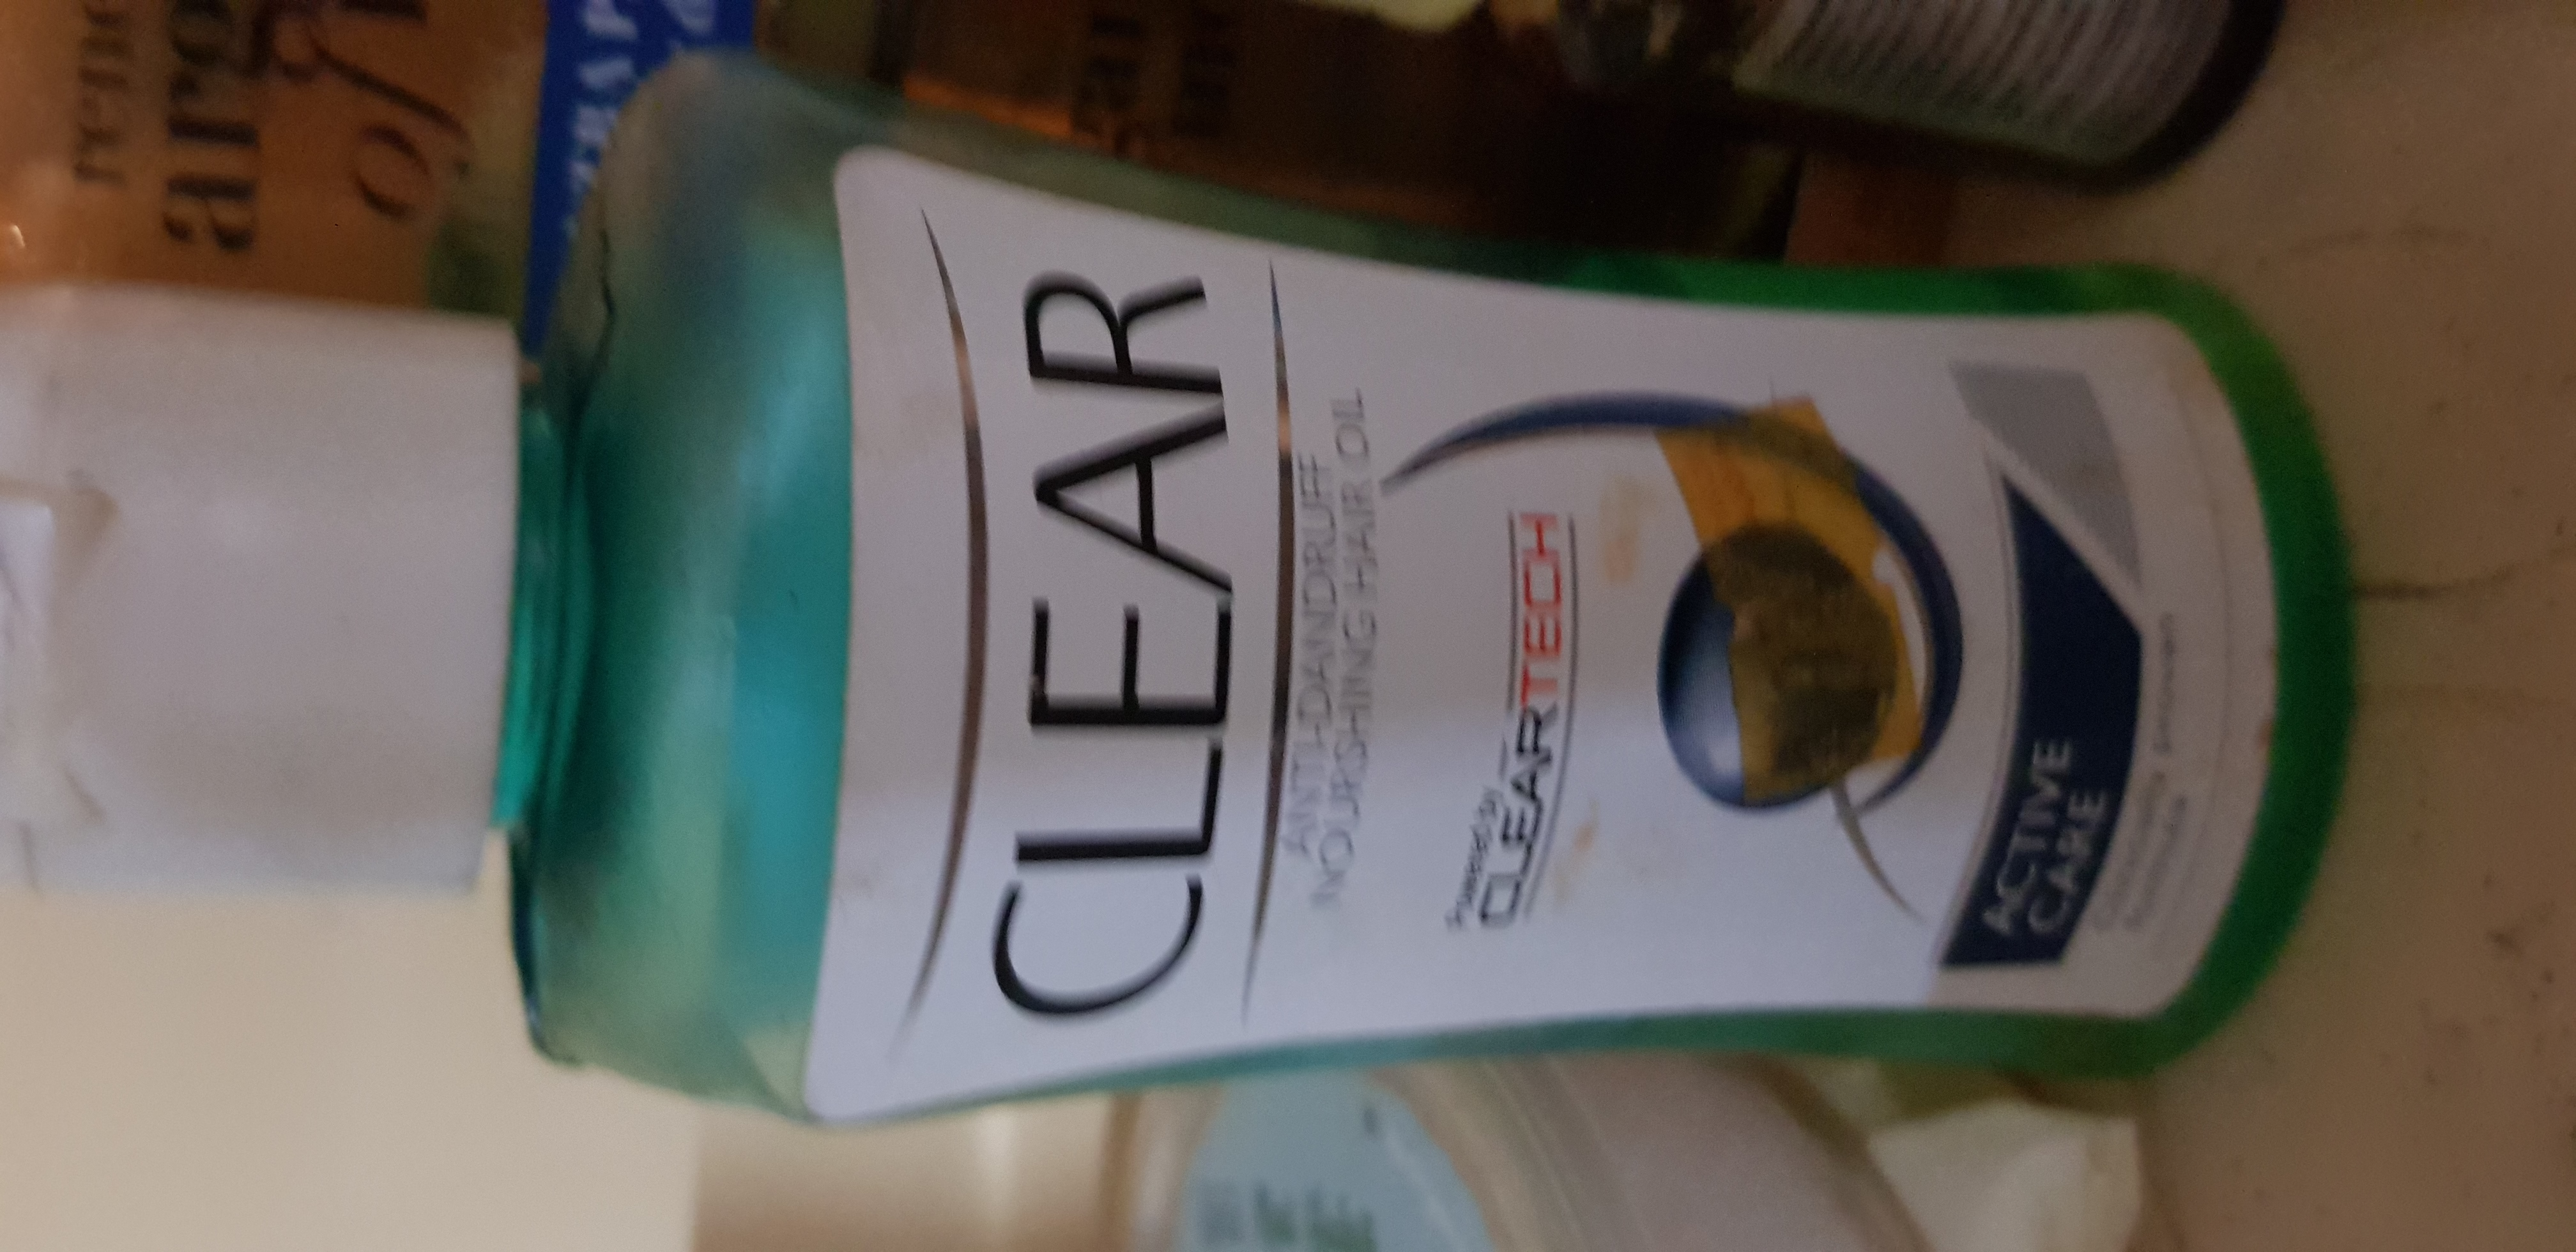 Clear Anti-Dandruff Active Care Nourishing Hair Oil -Makes hair dandruff free after wash!-By poonam_kakkar